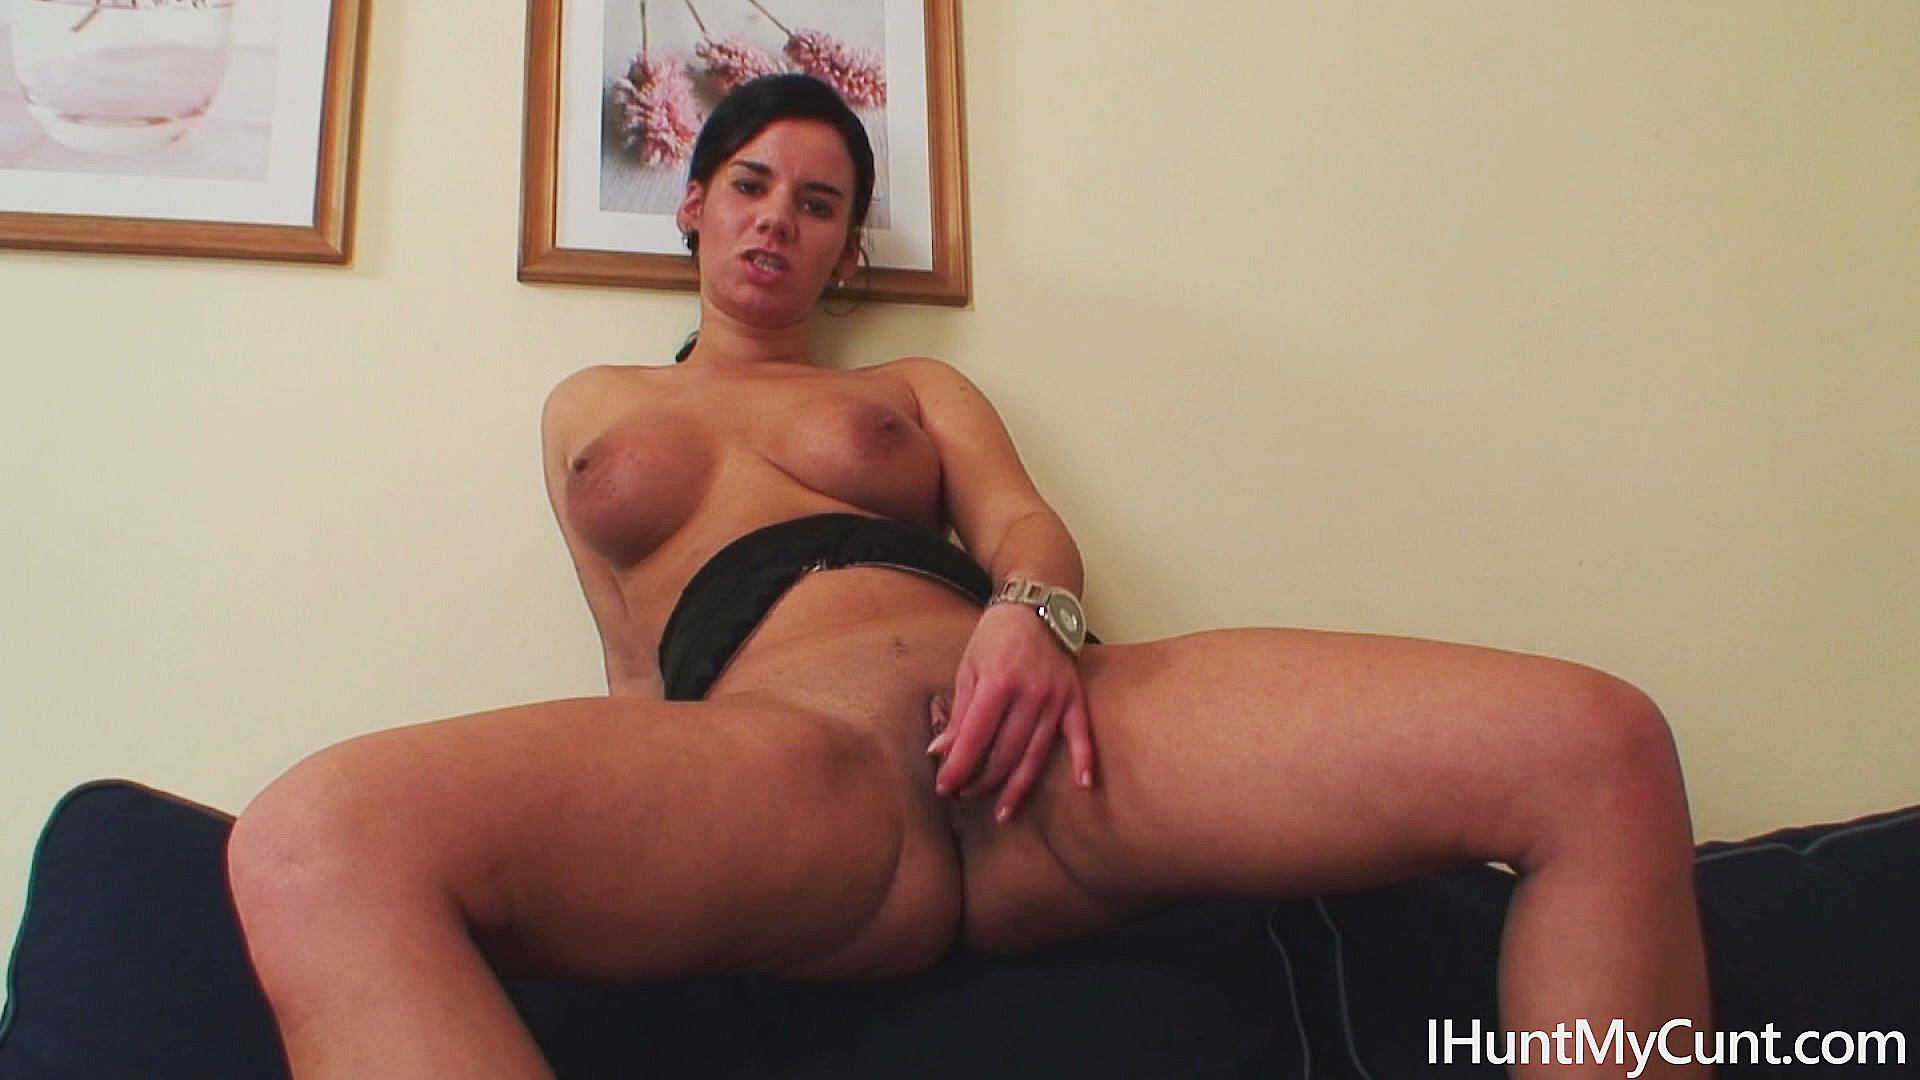 Jannette recommend Sex positions for anal sex